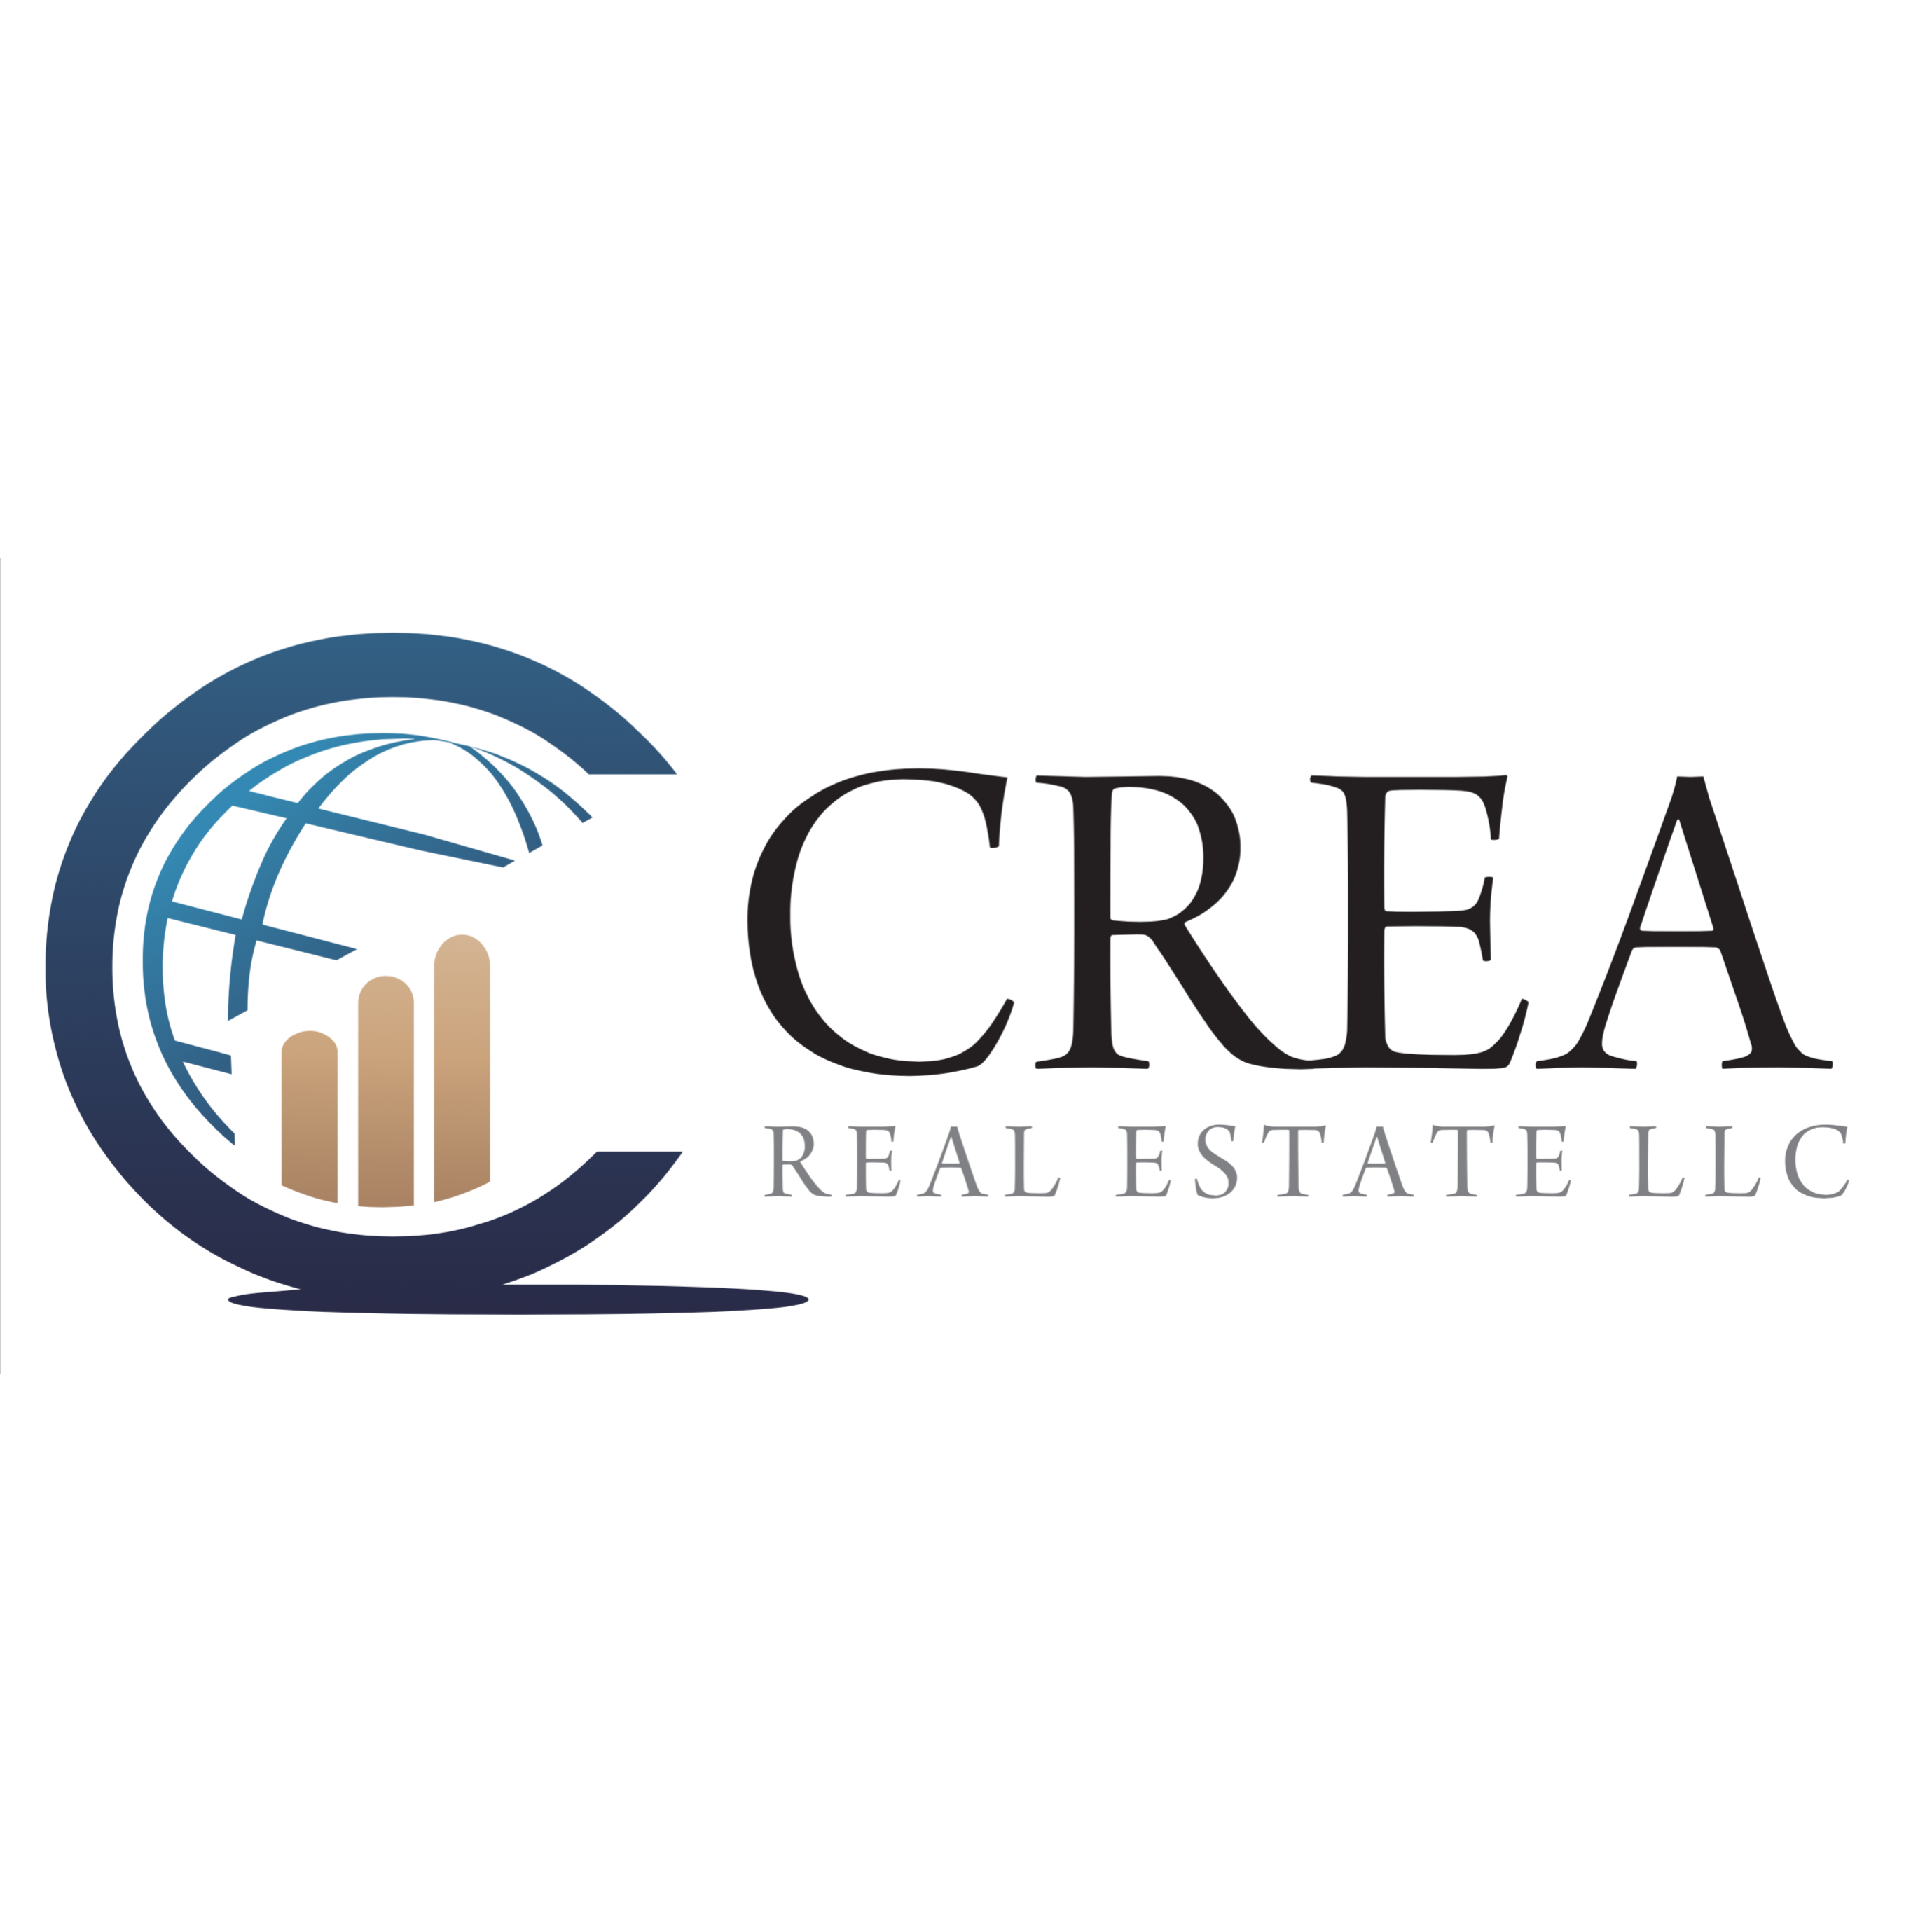 CREA Real Estate LLC